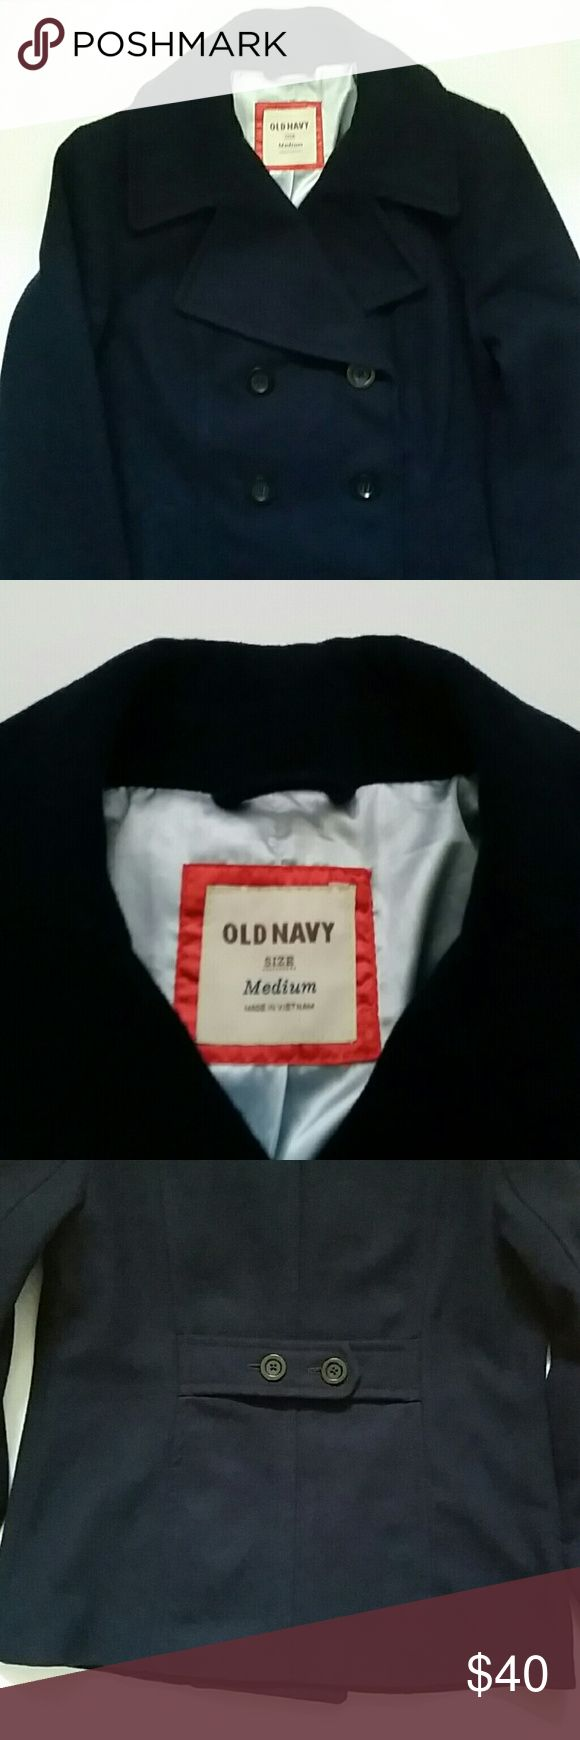 Old Navy Pea Coat color navy SZ Medium Stylishly chase away the chill this winter in this great Old Navy double breasted, navy Pea Coat.  It has front pockets, and is self belted in back.  Beautiful light blue satin look lining.  Gently loved. 6 button front..buttons dark navy all in great shape. Shoulder width 15 in, chest 20 in , arm 25 in. Old Navy Jackets & Coats Pea Coats